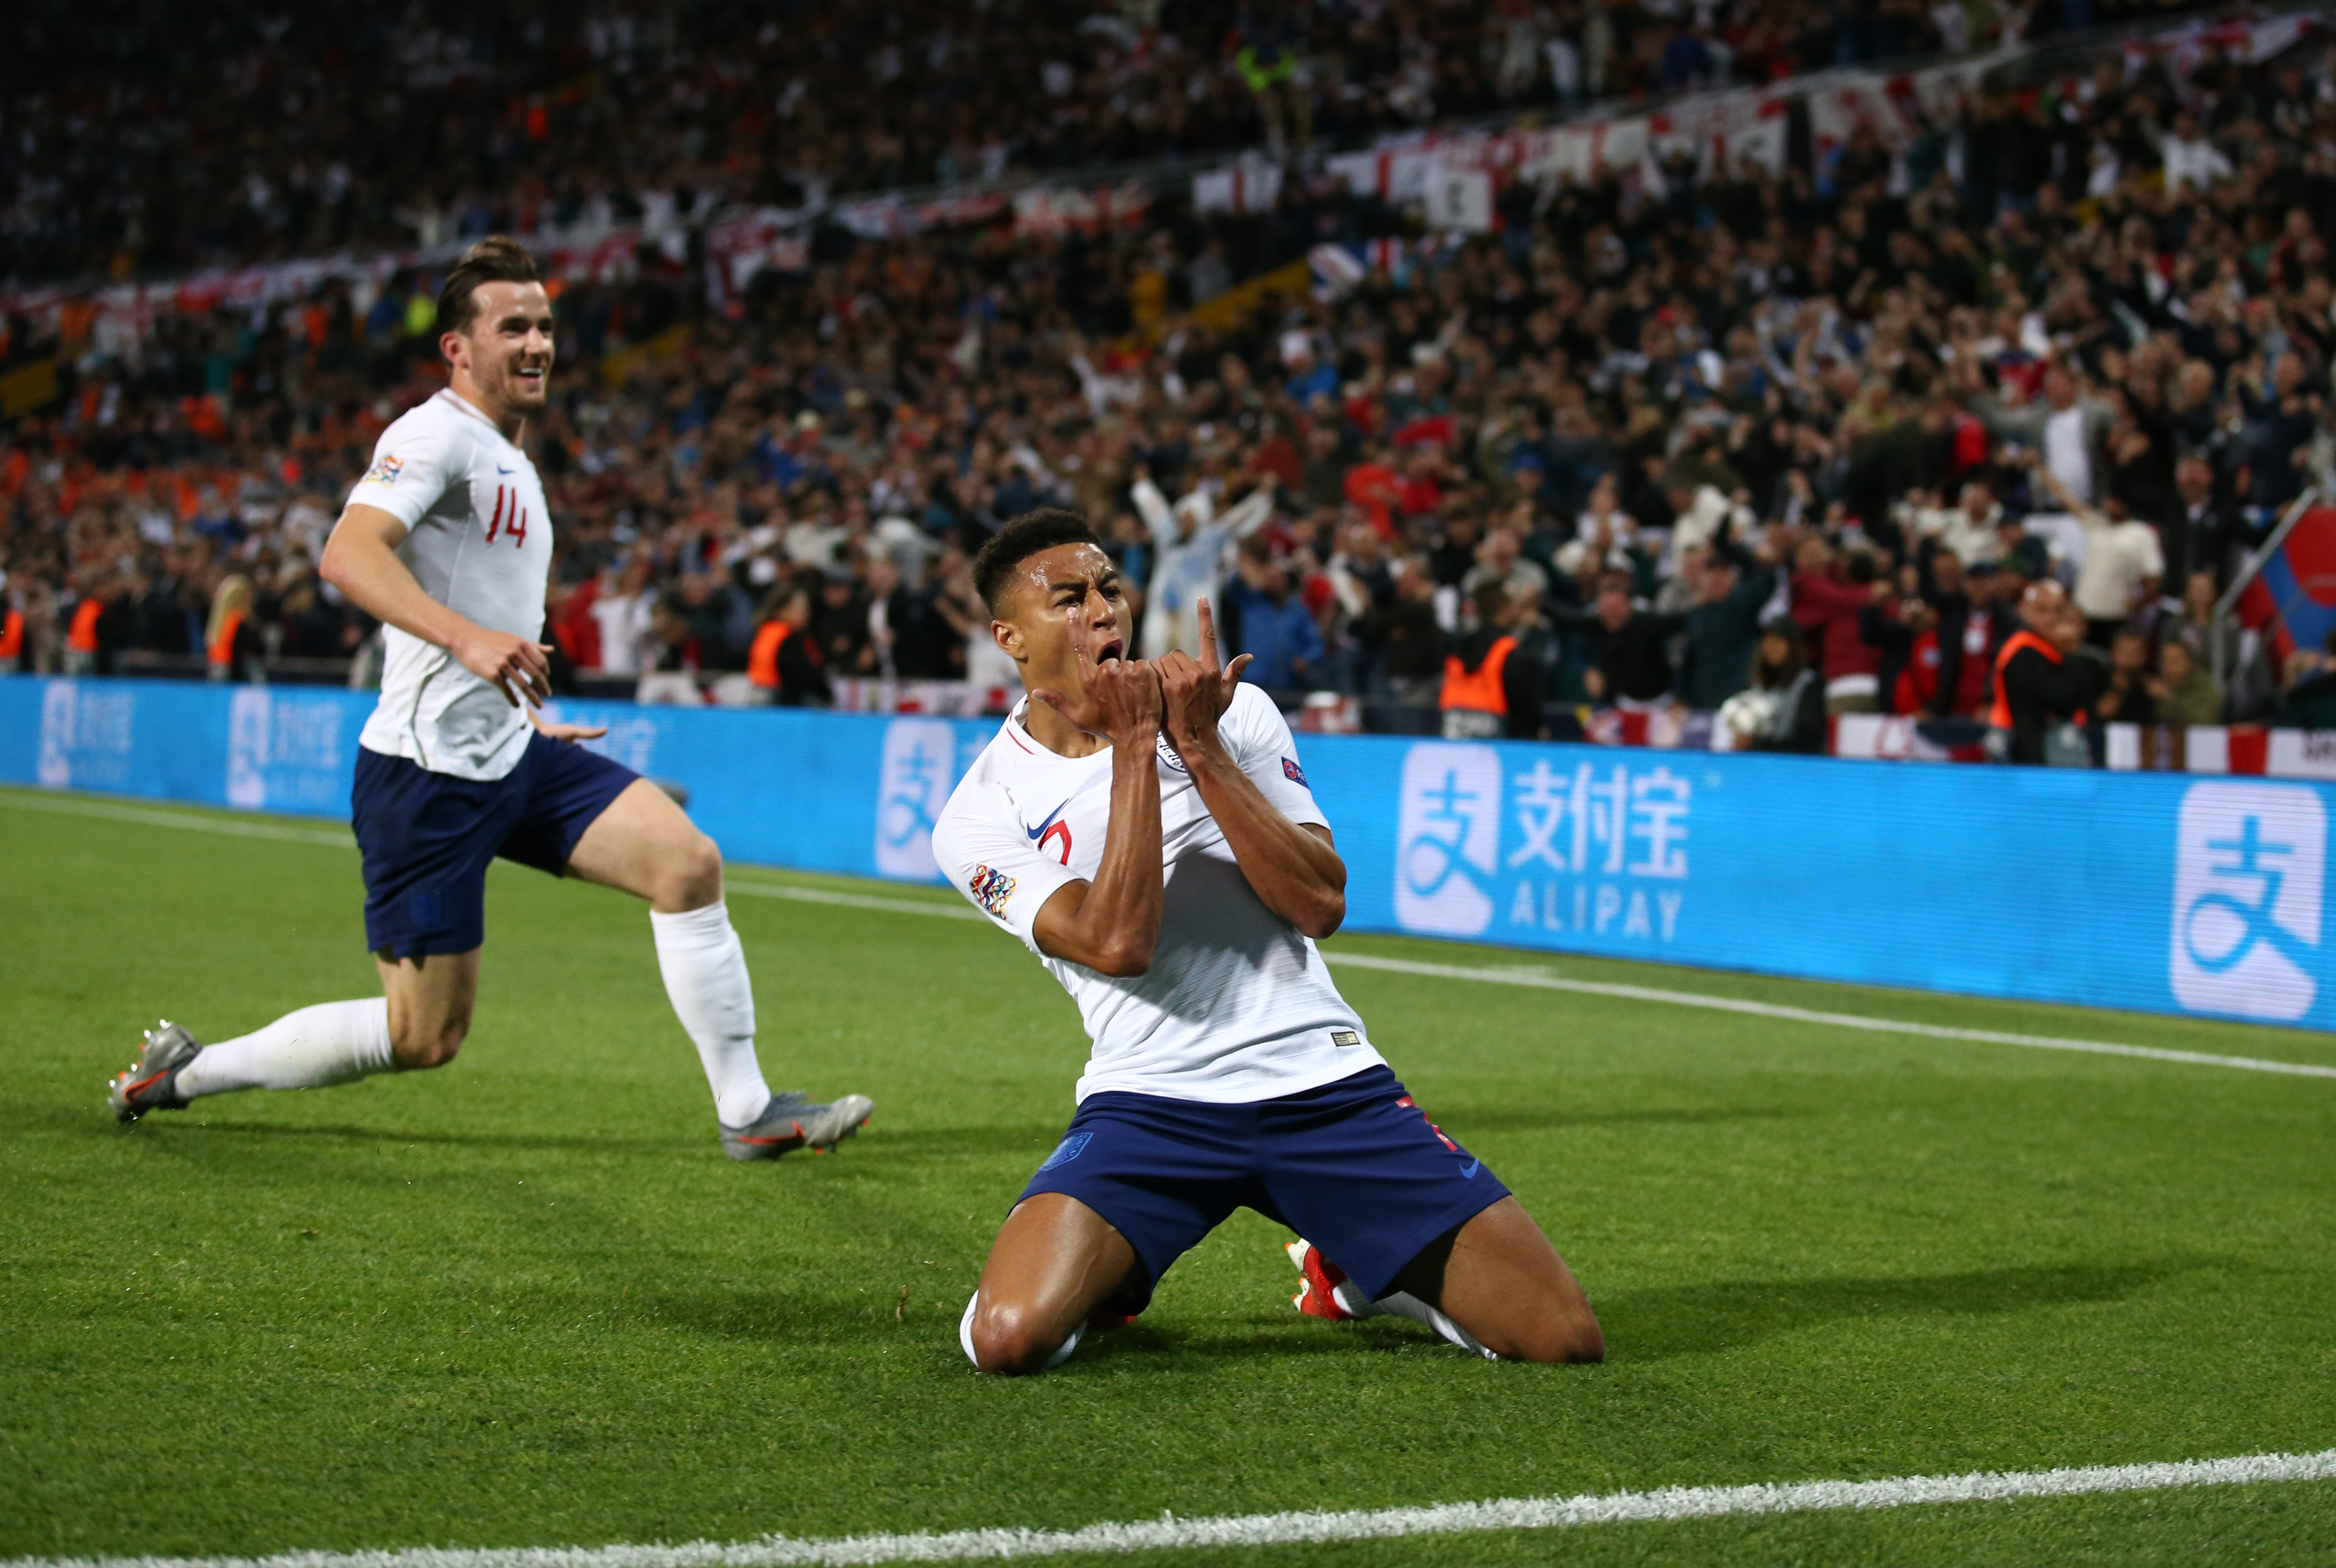 Netherlands v England in the Nations League semi-finals